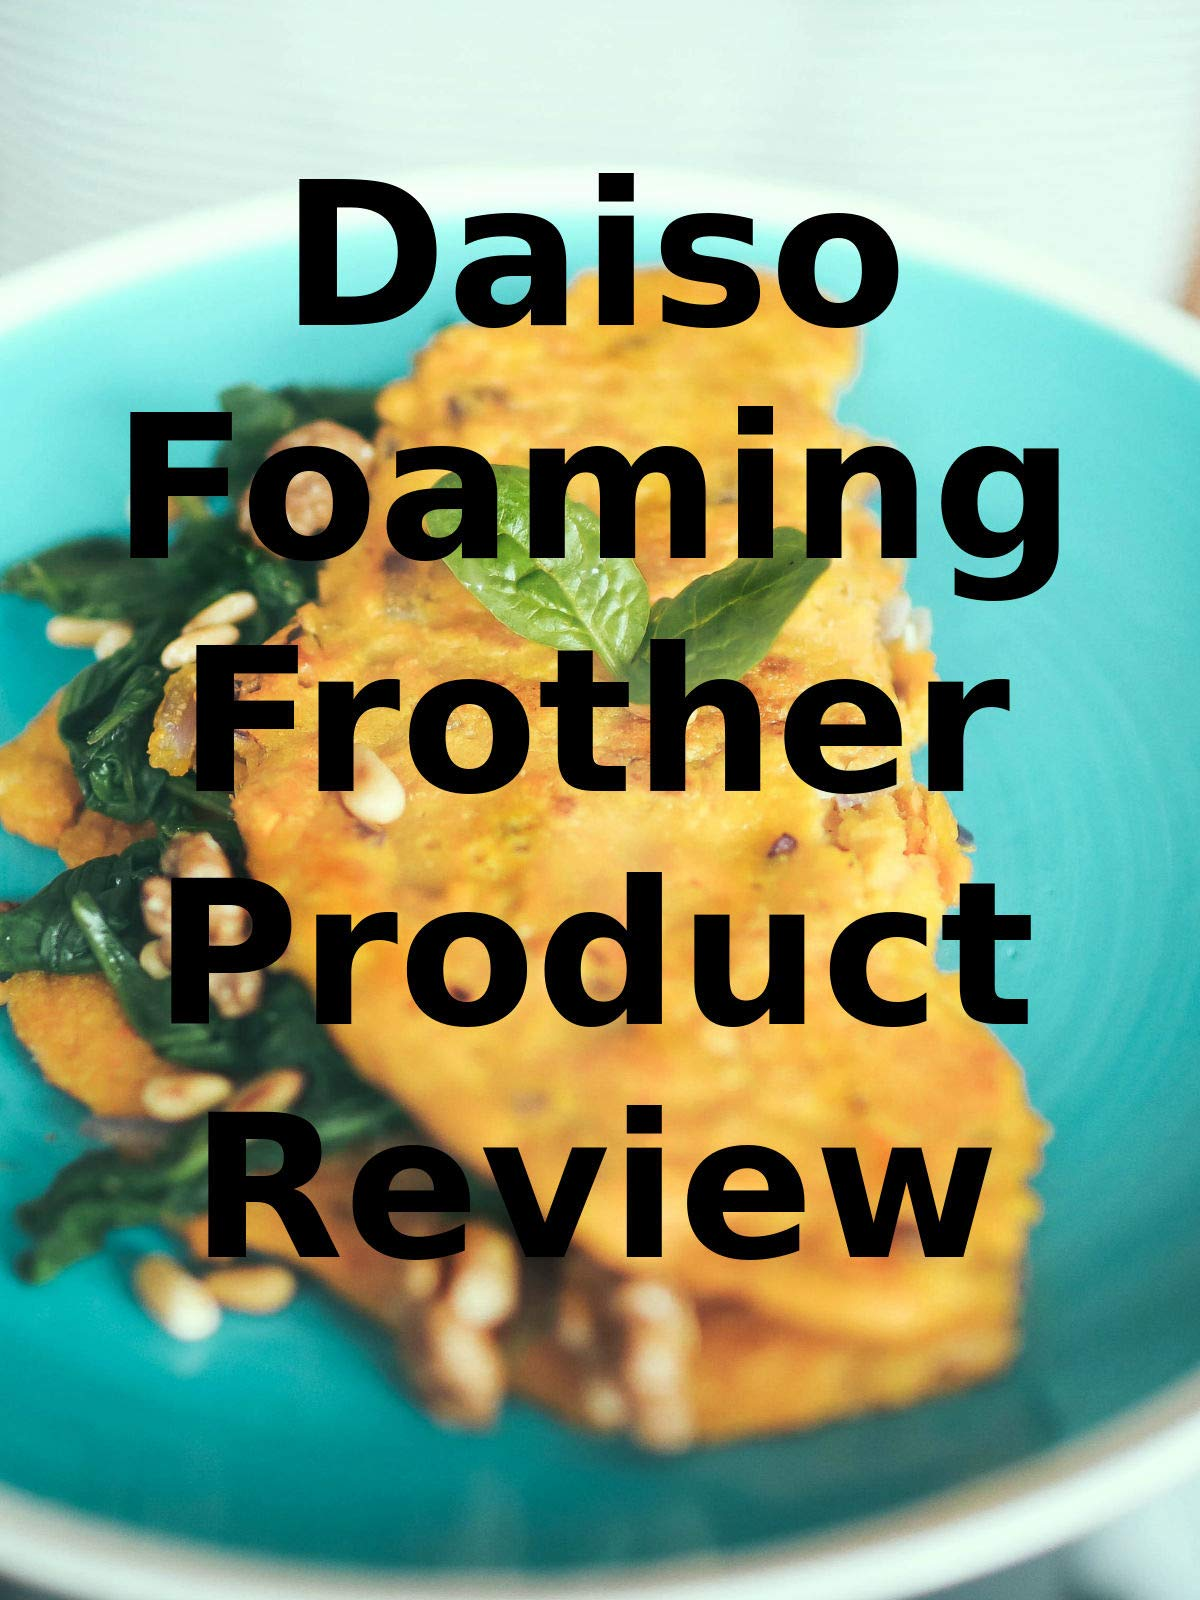 Review: Daiso Foaming Frother Product Review on Amazon Prime Video UK